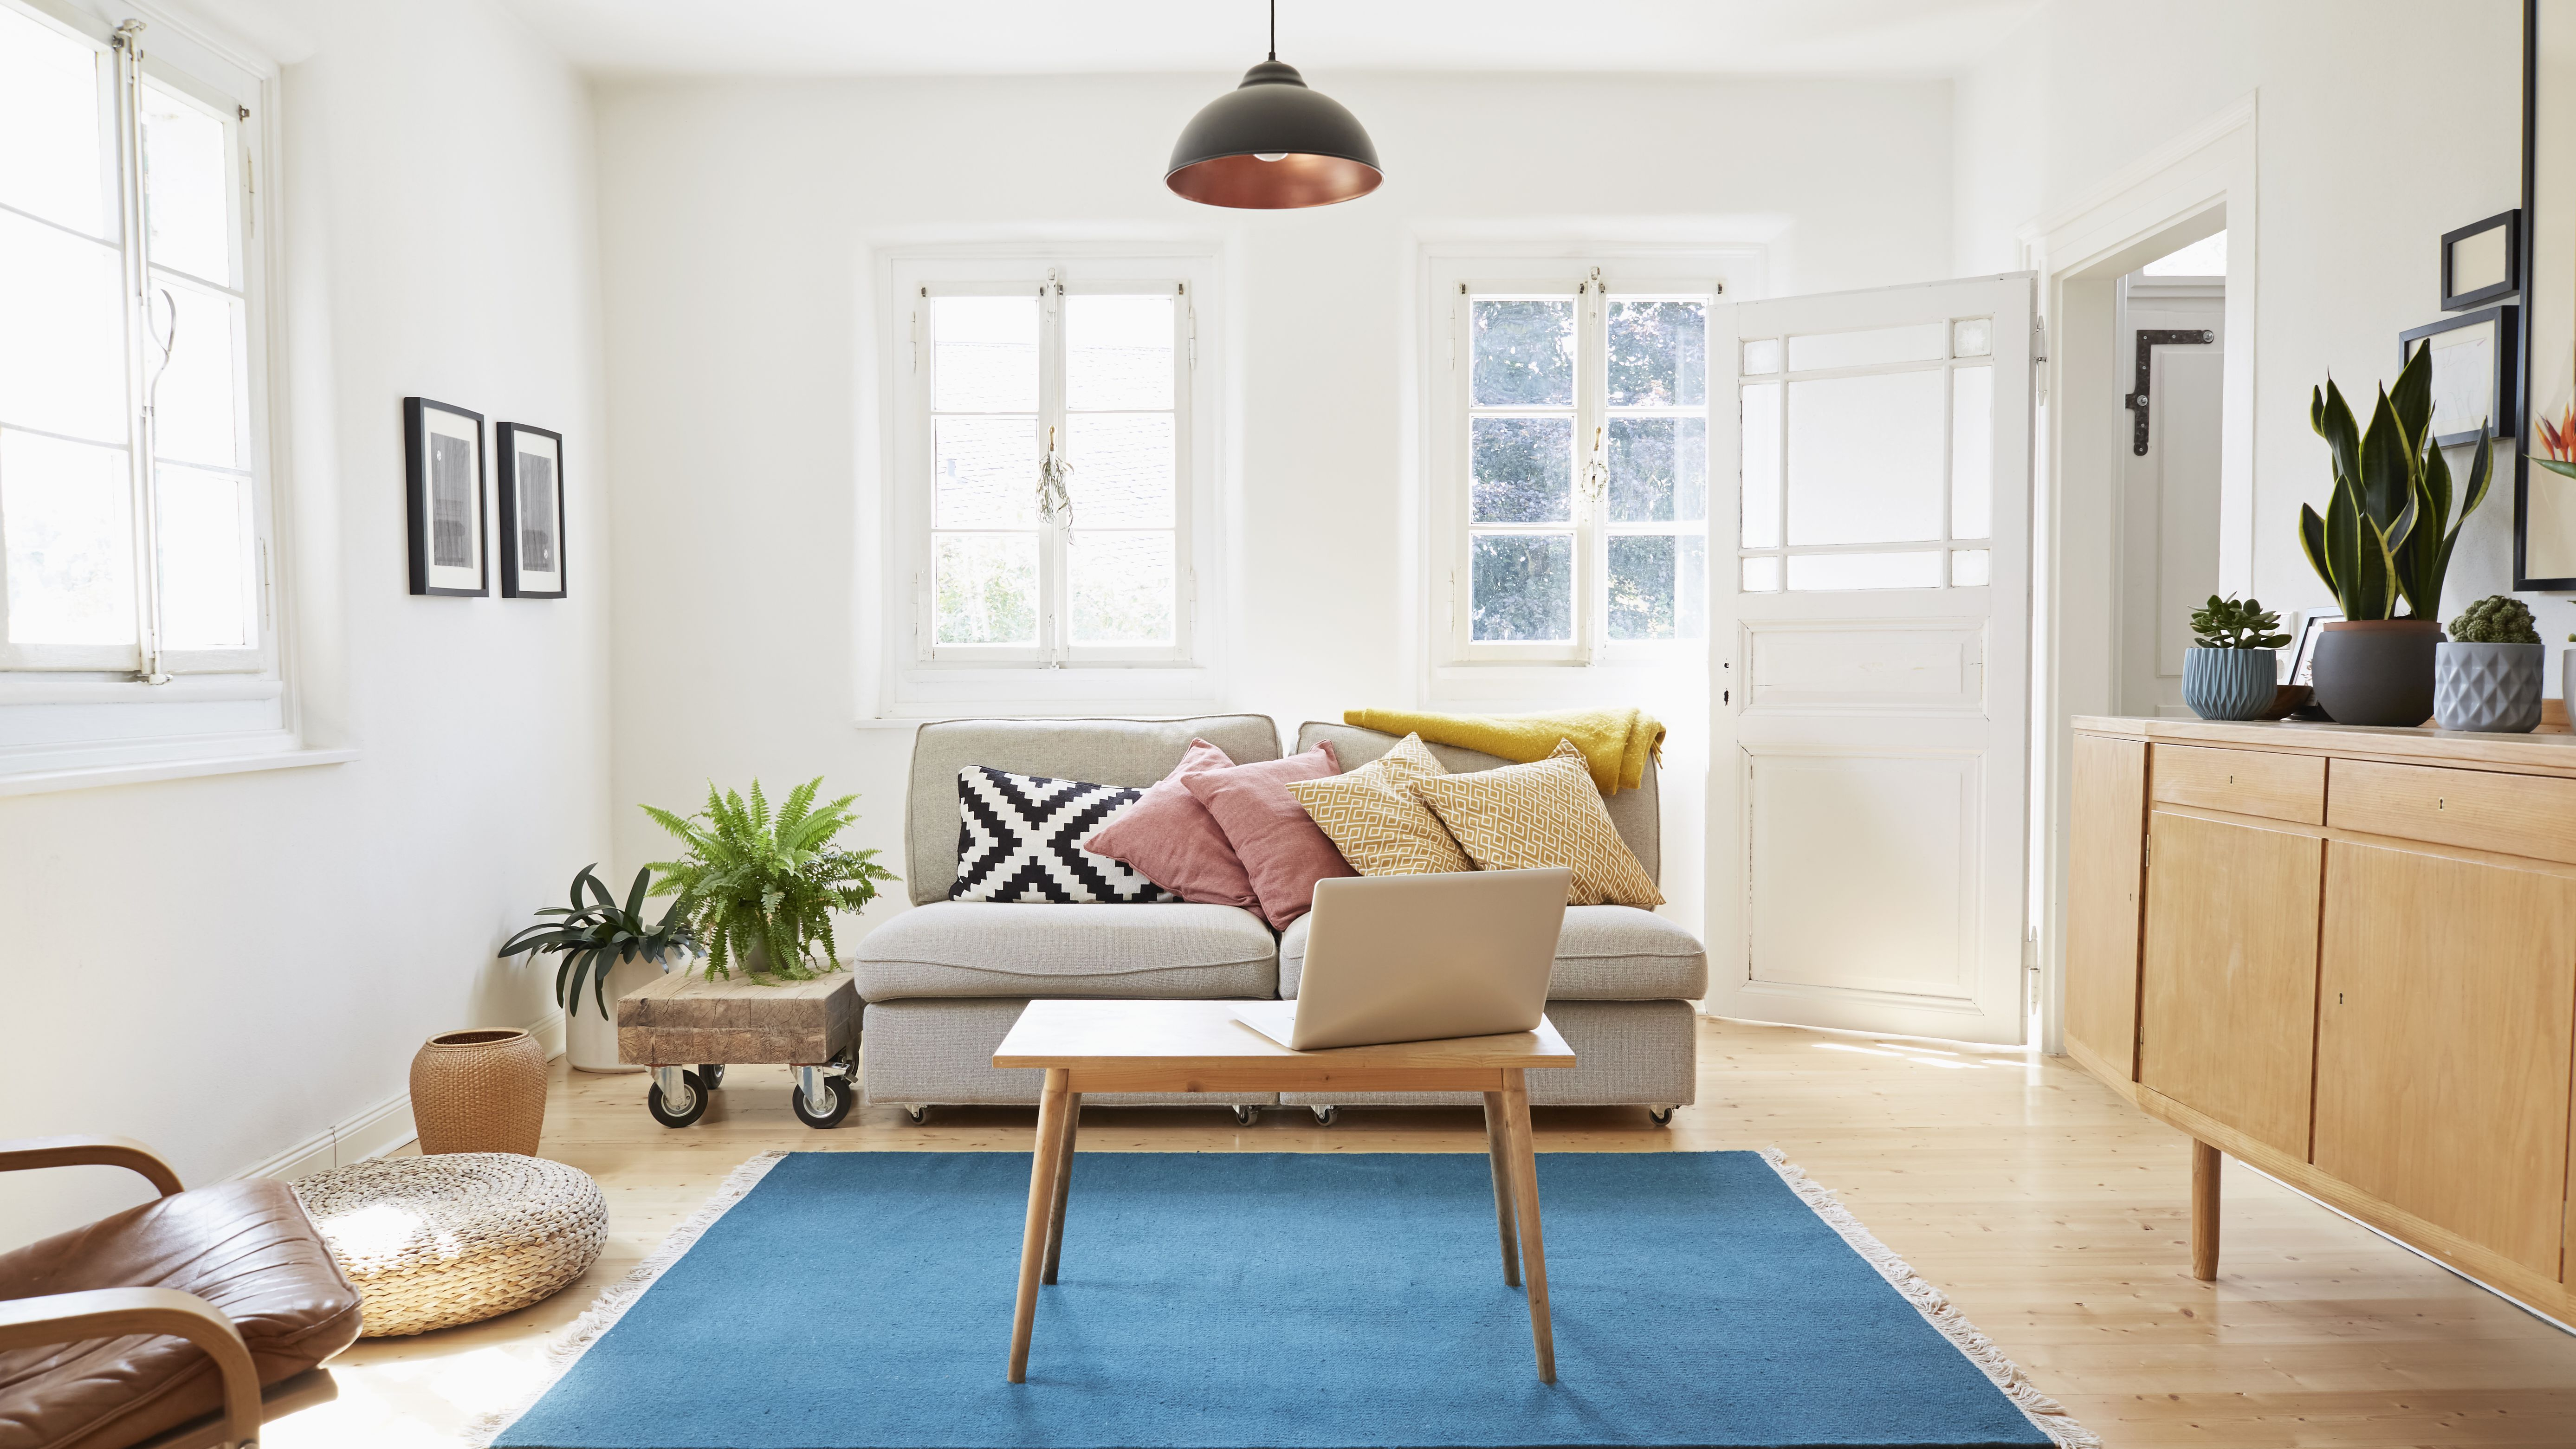 The Best Places To Buy Furniture In 2019 regarding Average Cost Of Living Room Set